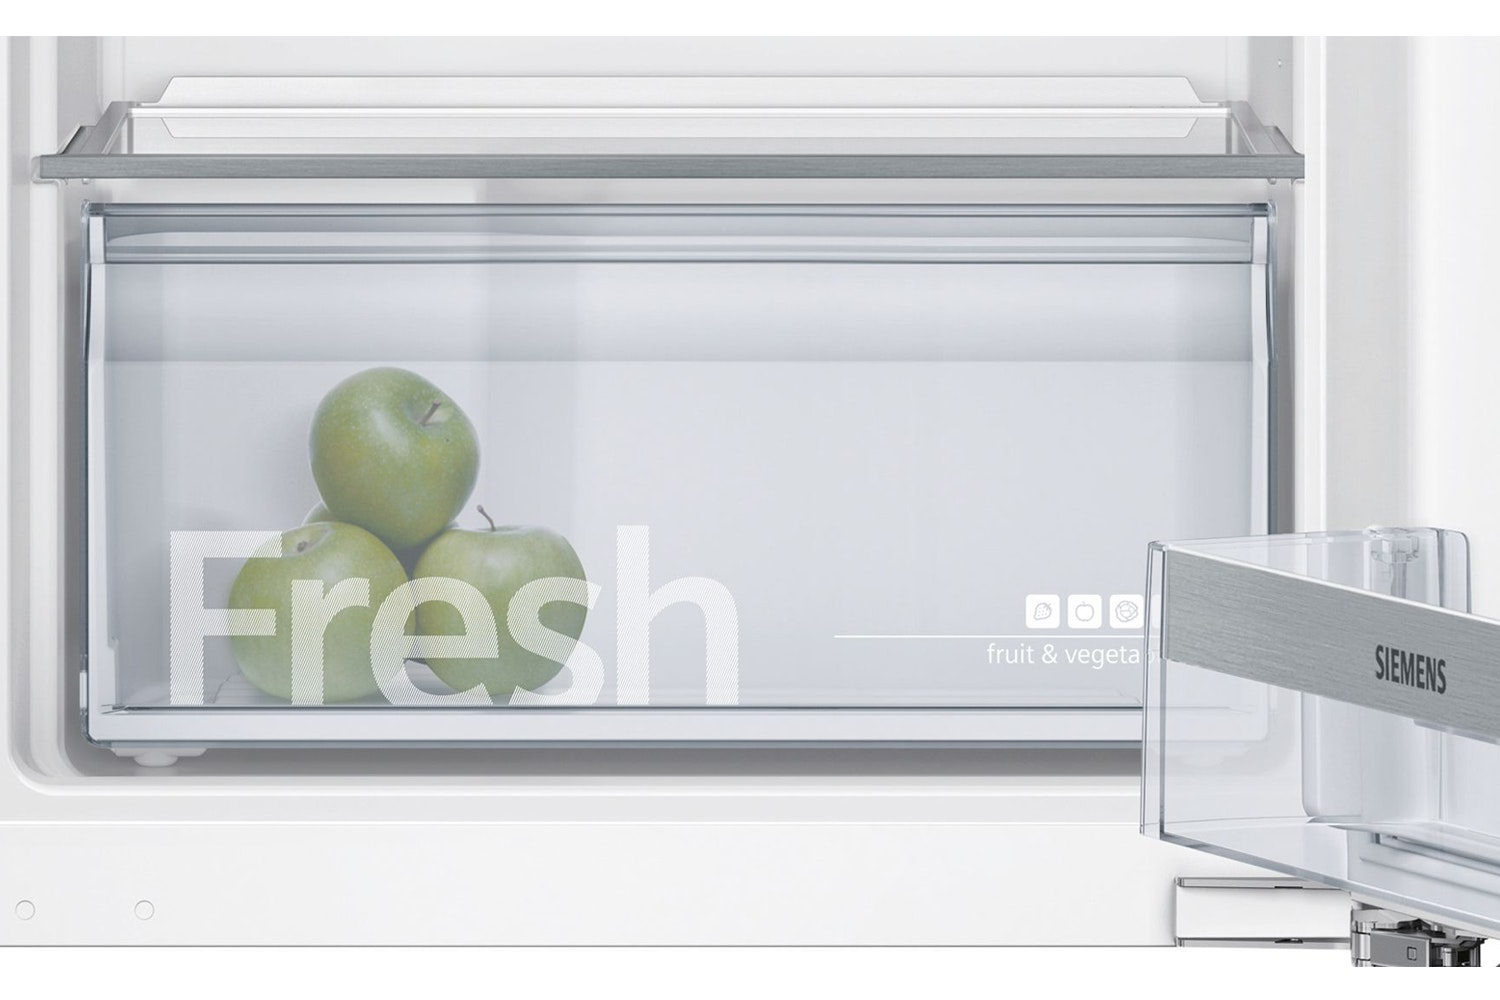 Siemens Integrated Fridge | KI22LVF30G